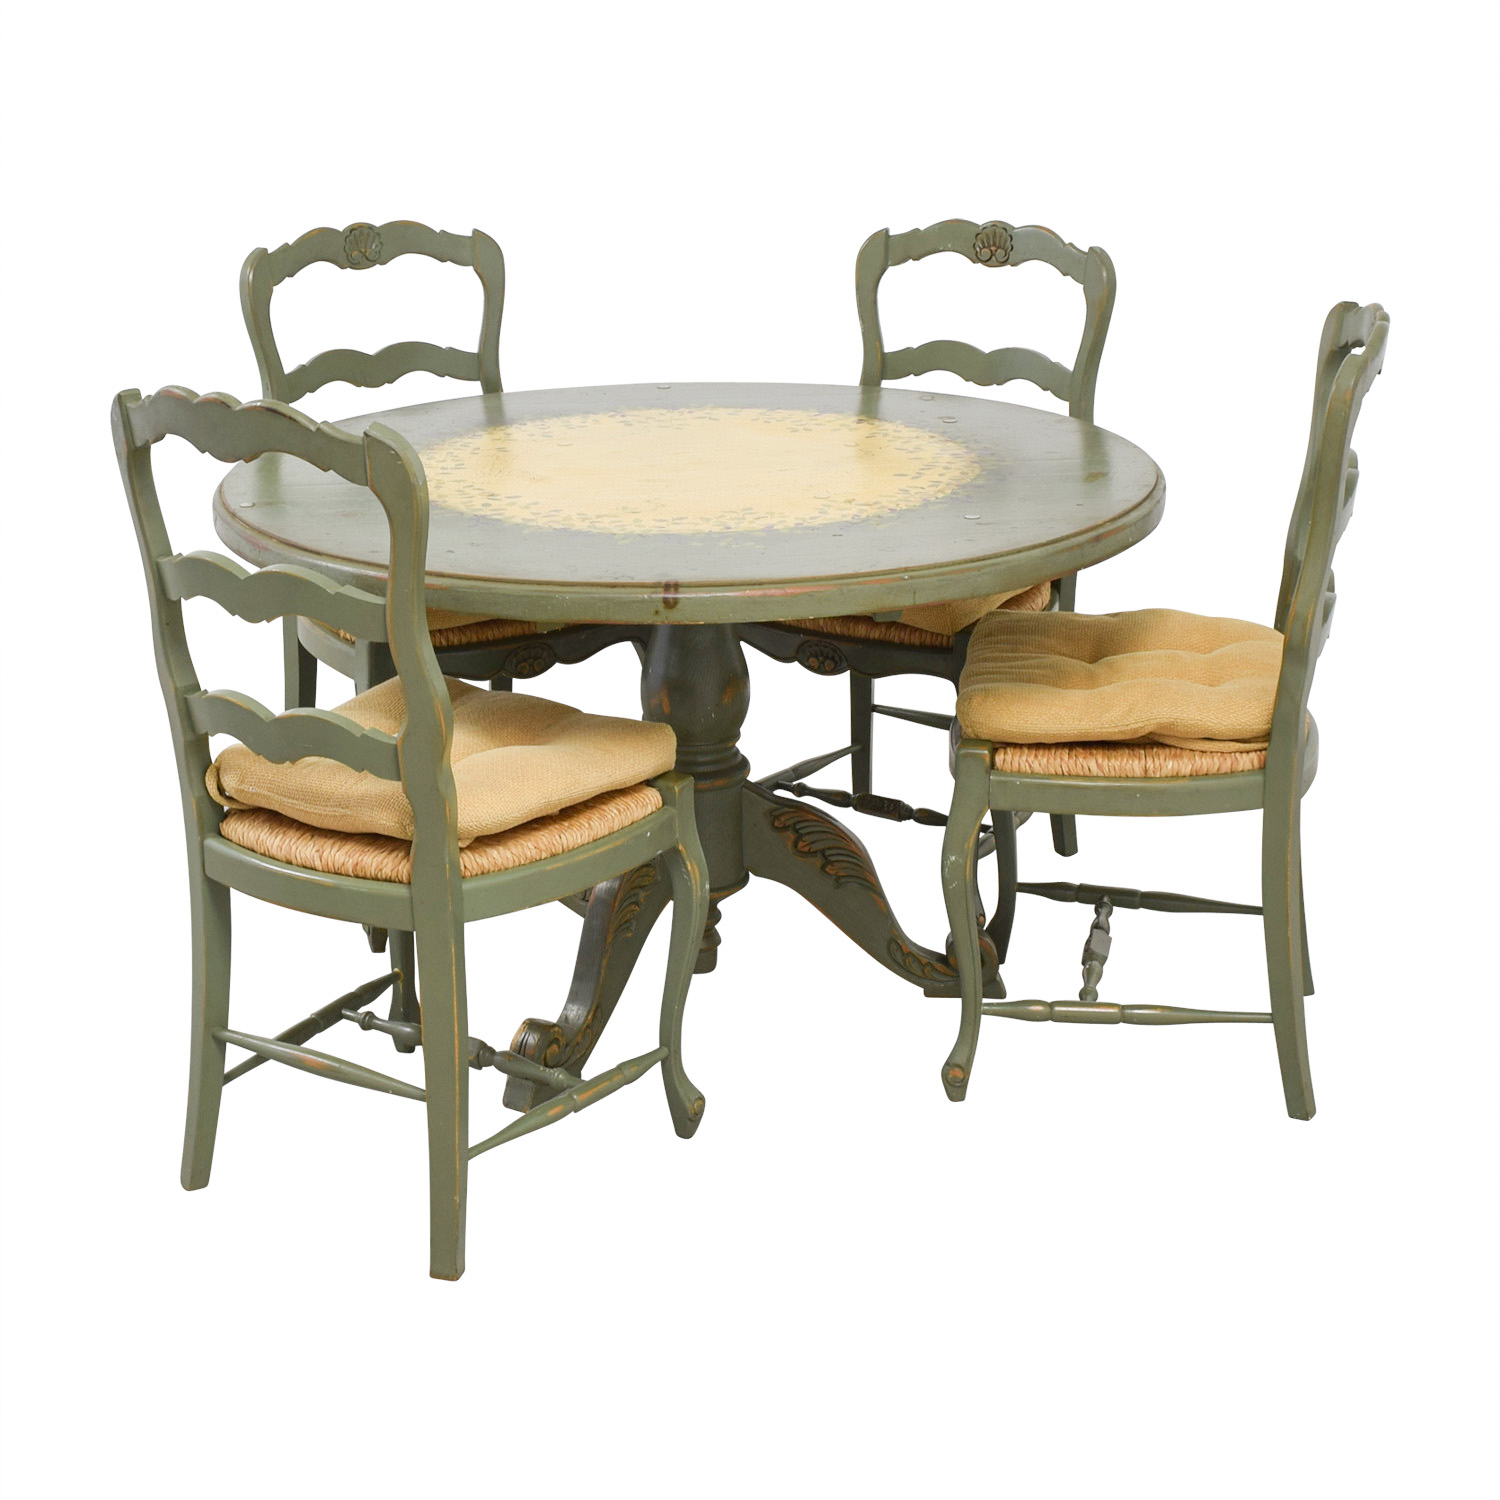 Used Table And Chairs 90 Off Hand Painted Country Style Kitchen Table And